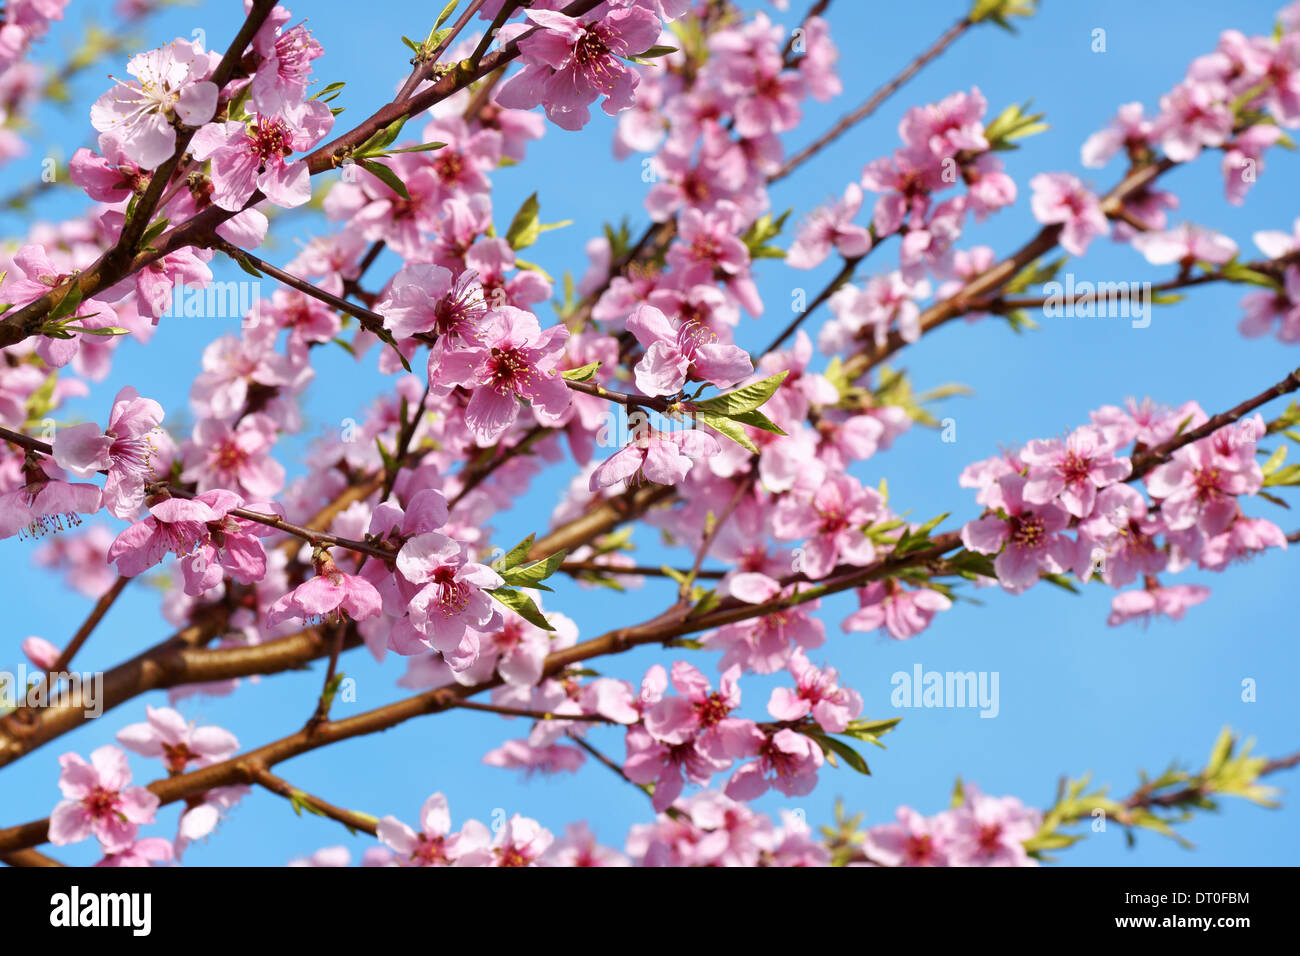 Some peach blossoms on the branch during spring blooming - Stock Image